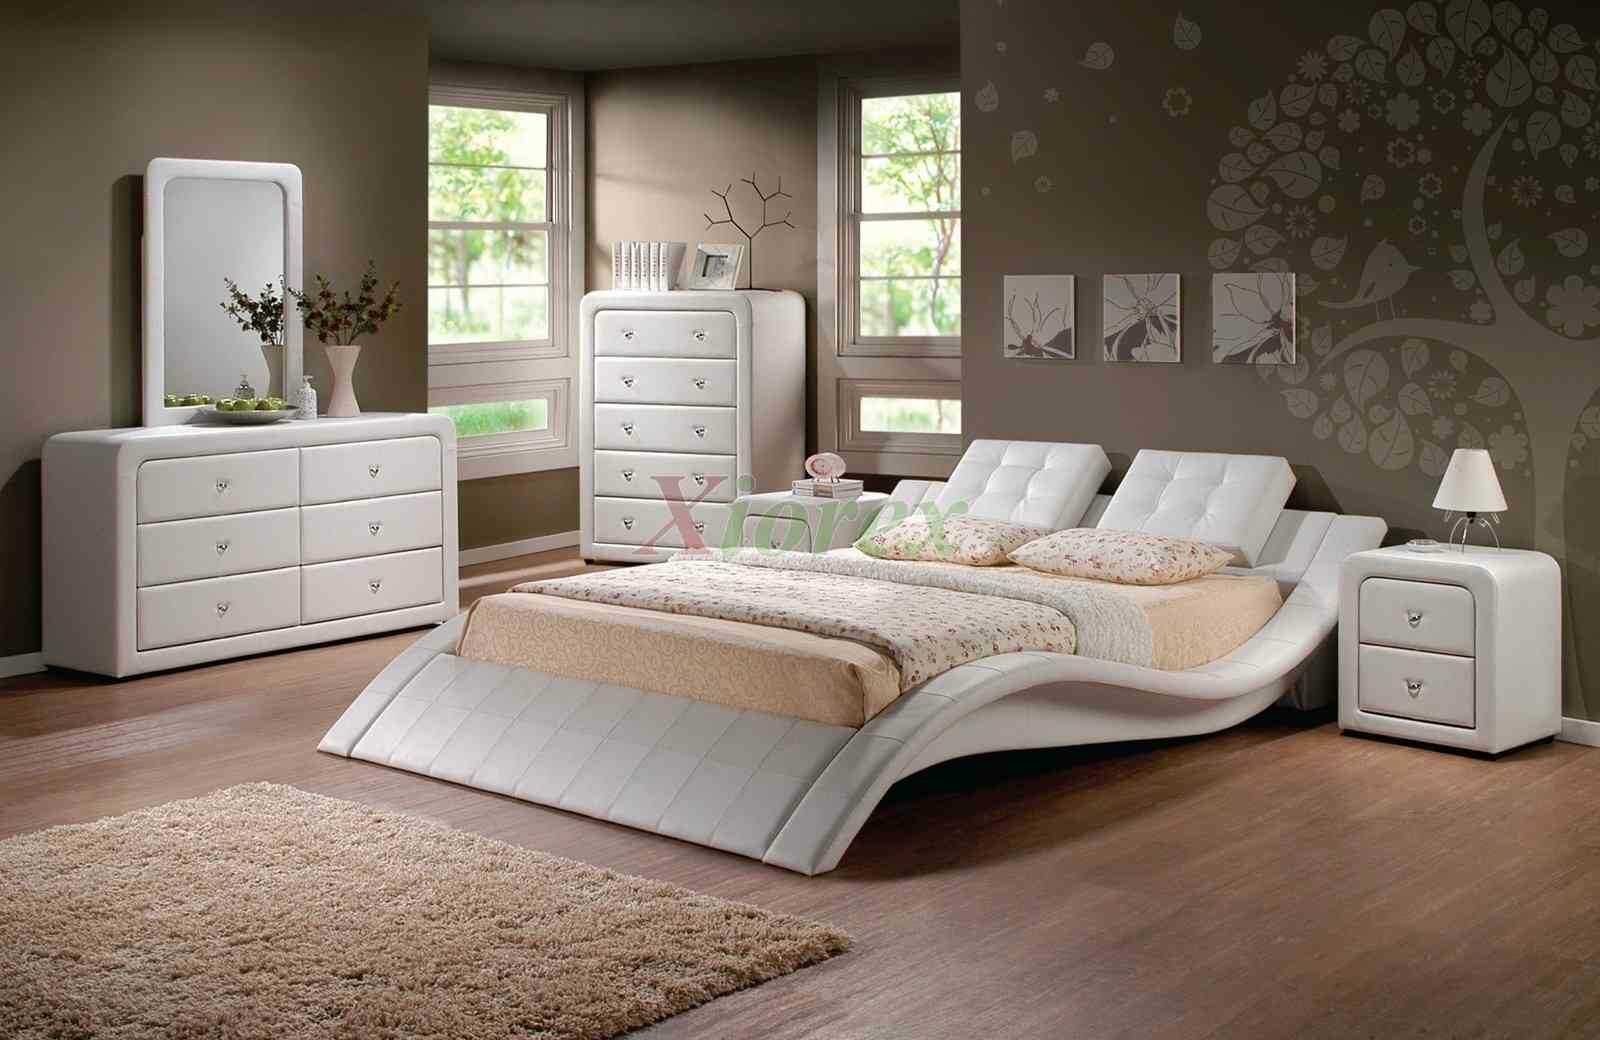 craigslist bed craigslist bedroom sets craigslist beds for sale